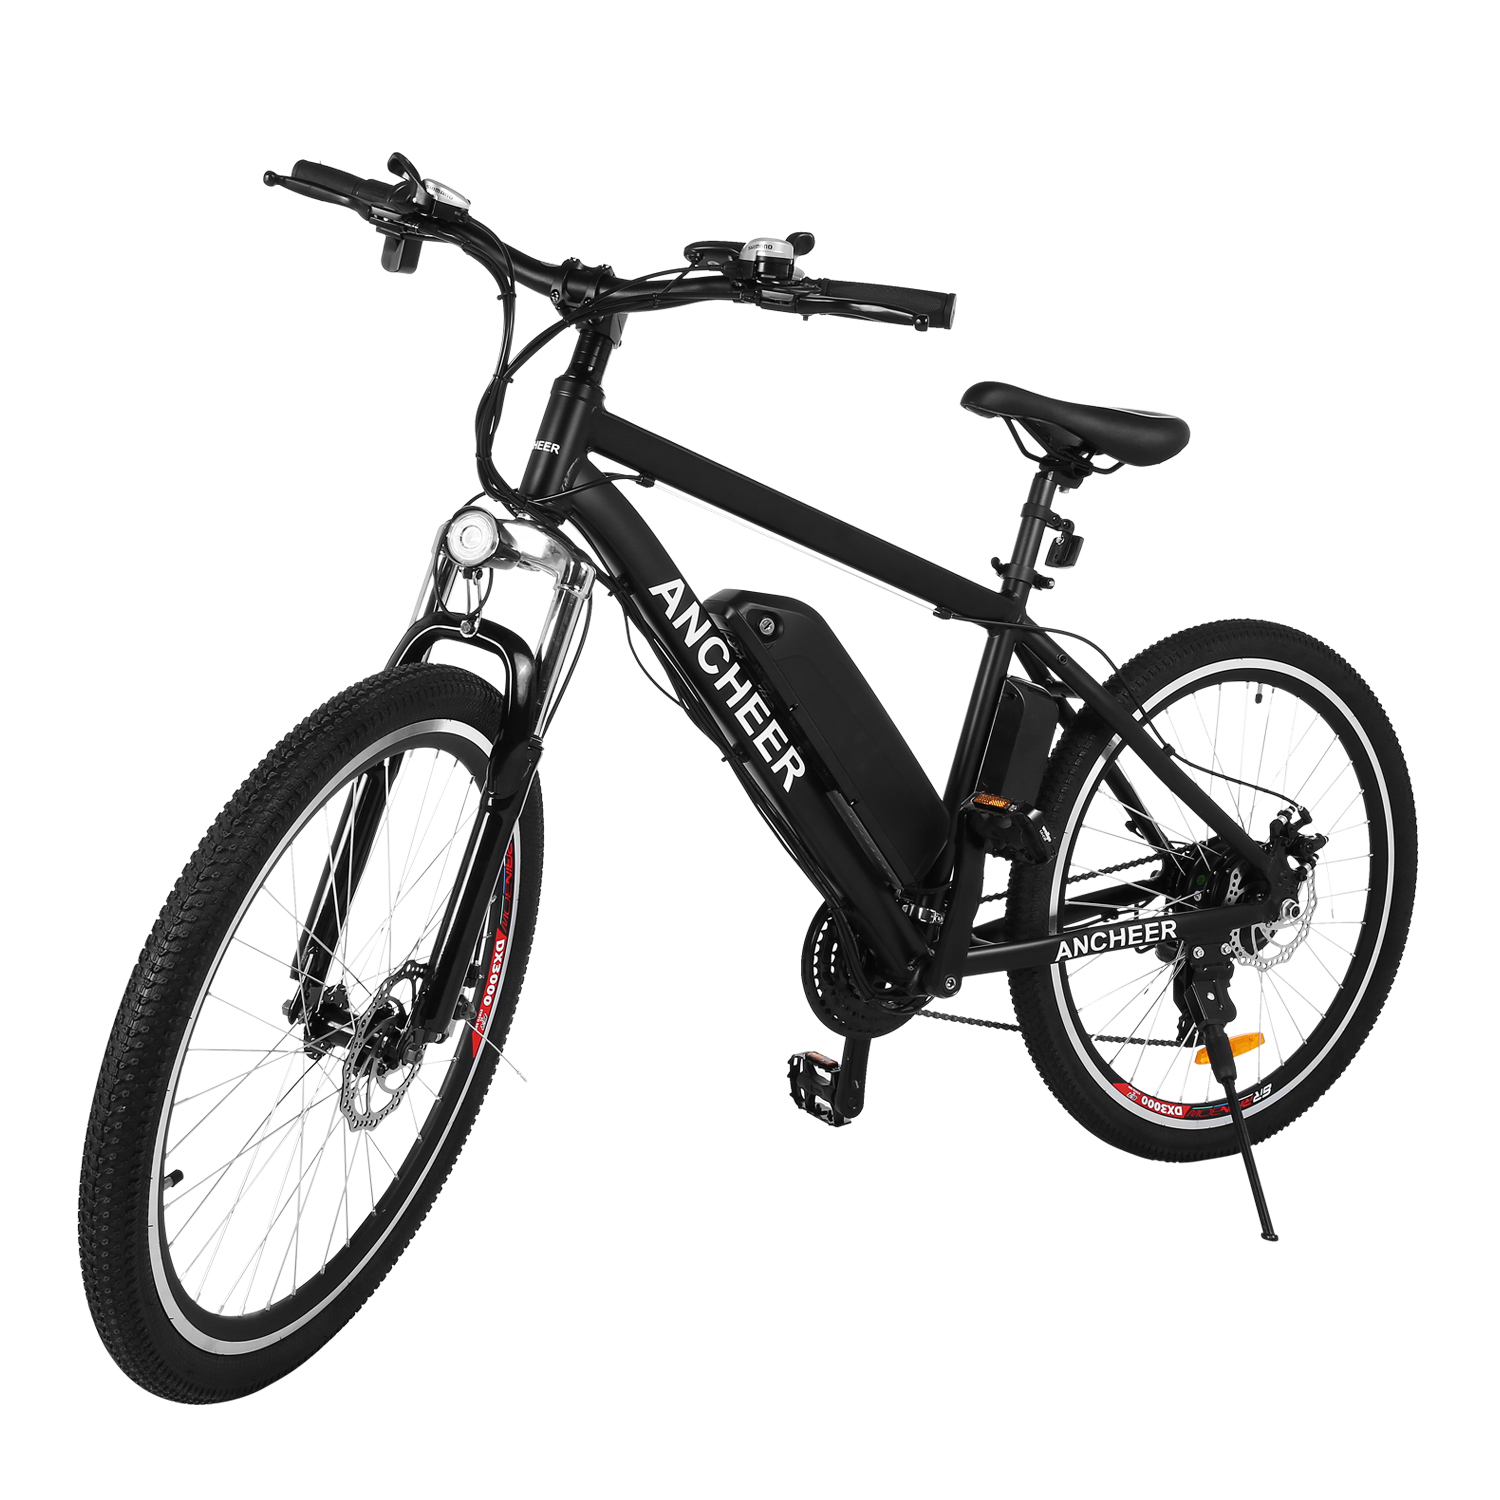 "ANCHEER Upgrade Fast 26""21 Speed 36V Electric Mountain Bicycle for Adults with Removable Lithium-ion Battery Integrated Mens Electric Bike, With LED Handlebar Display, LED Headlight[US STOCK]"